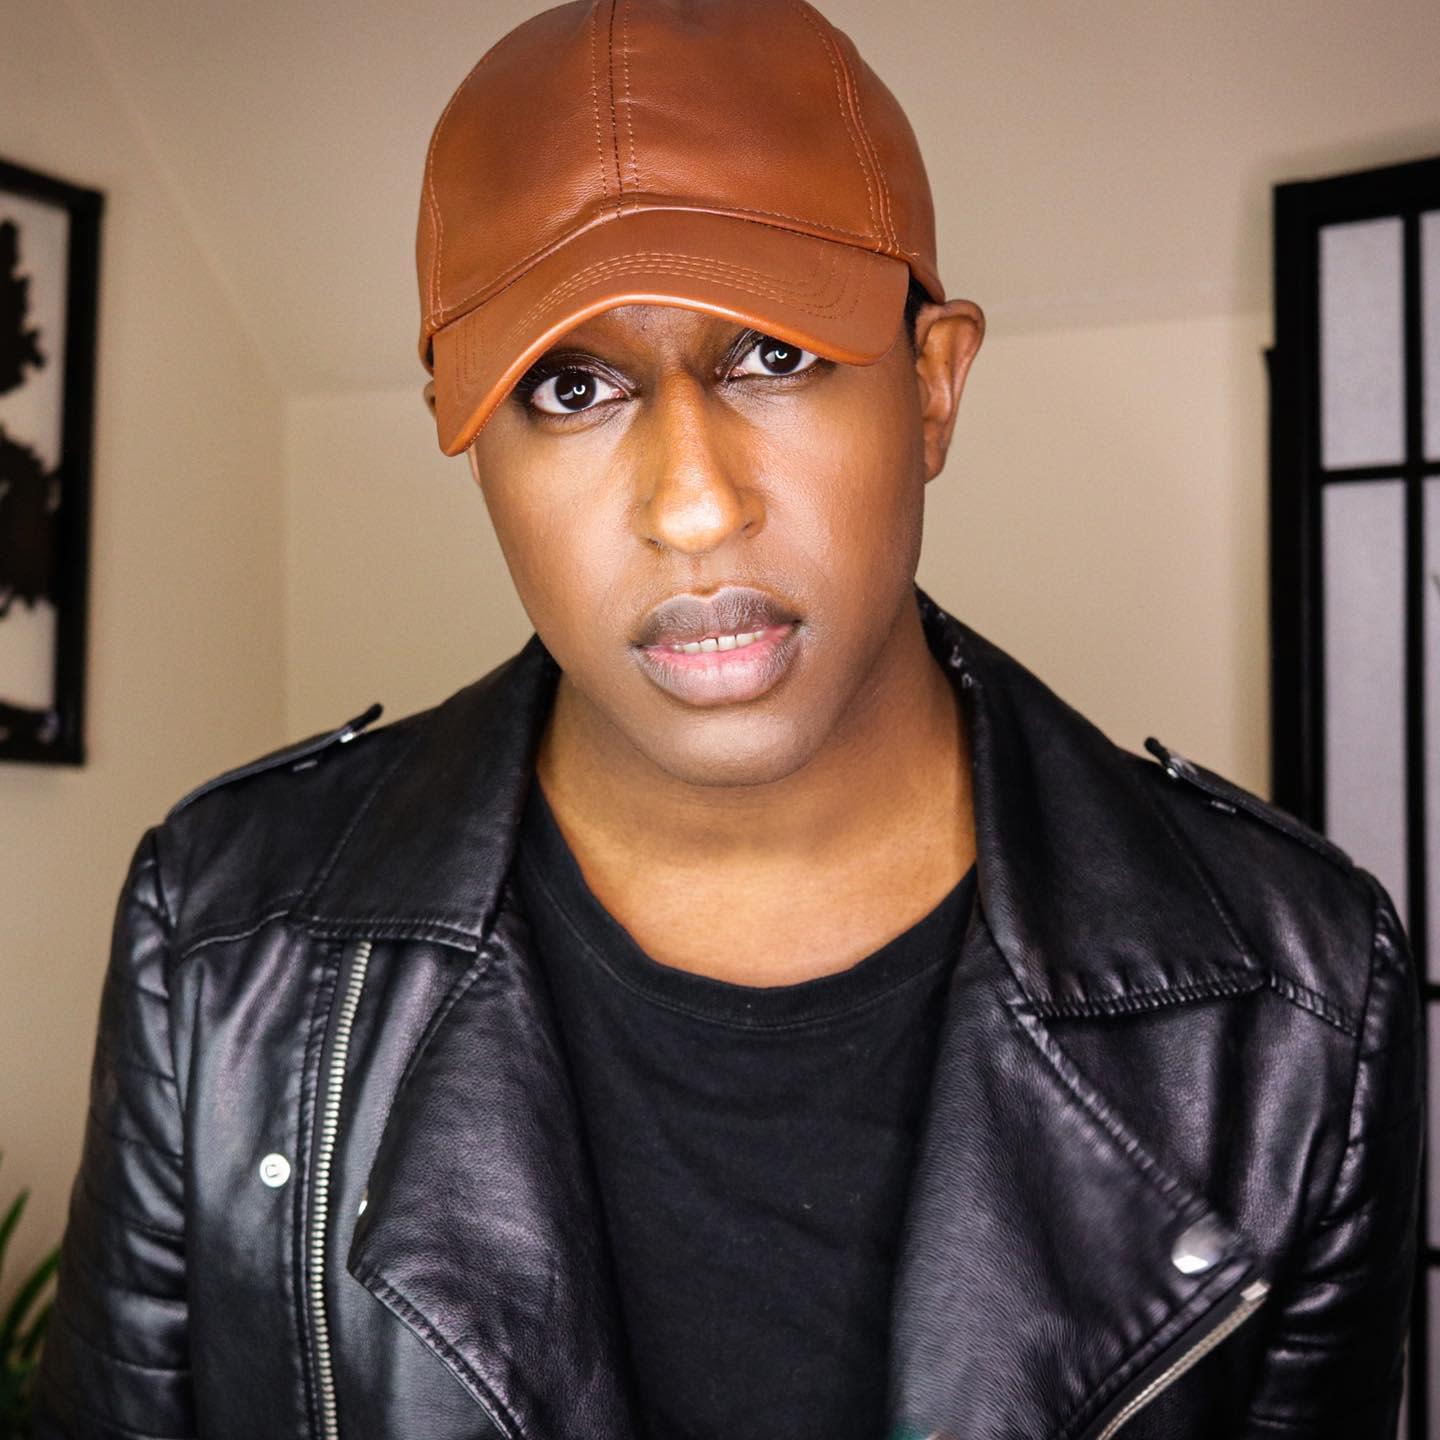 Leather Mens Hat Styles -malsoaries